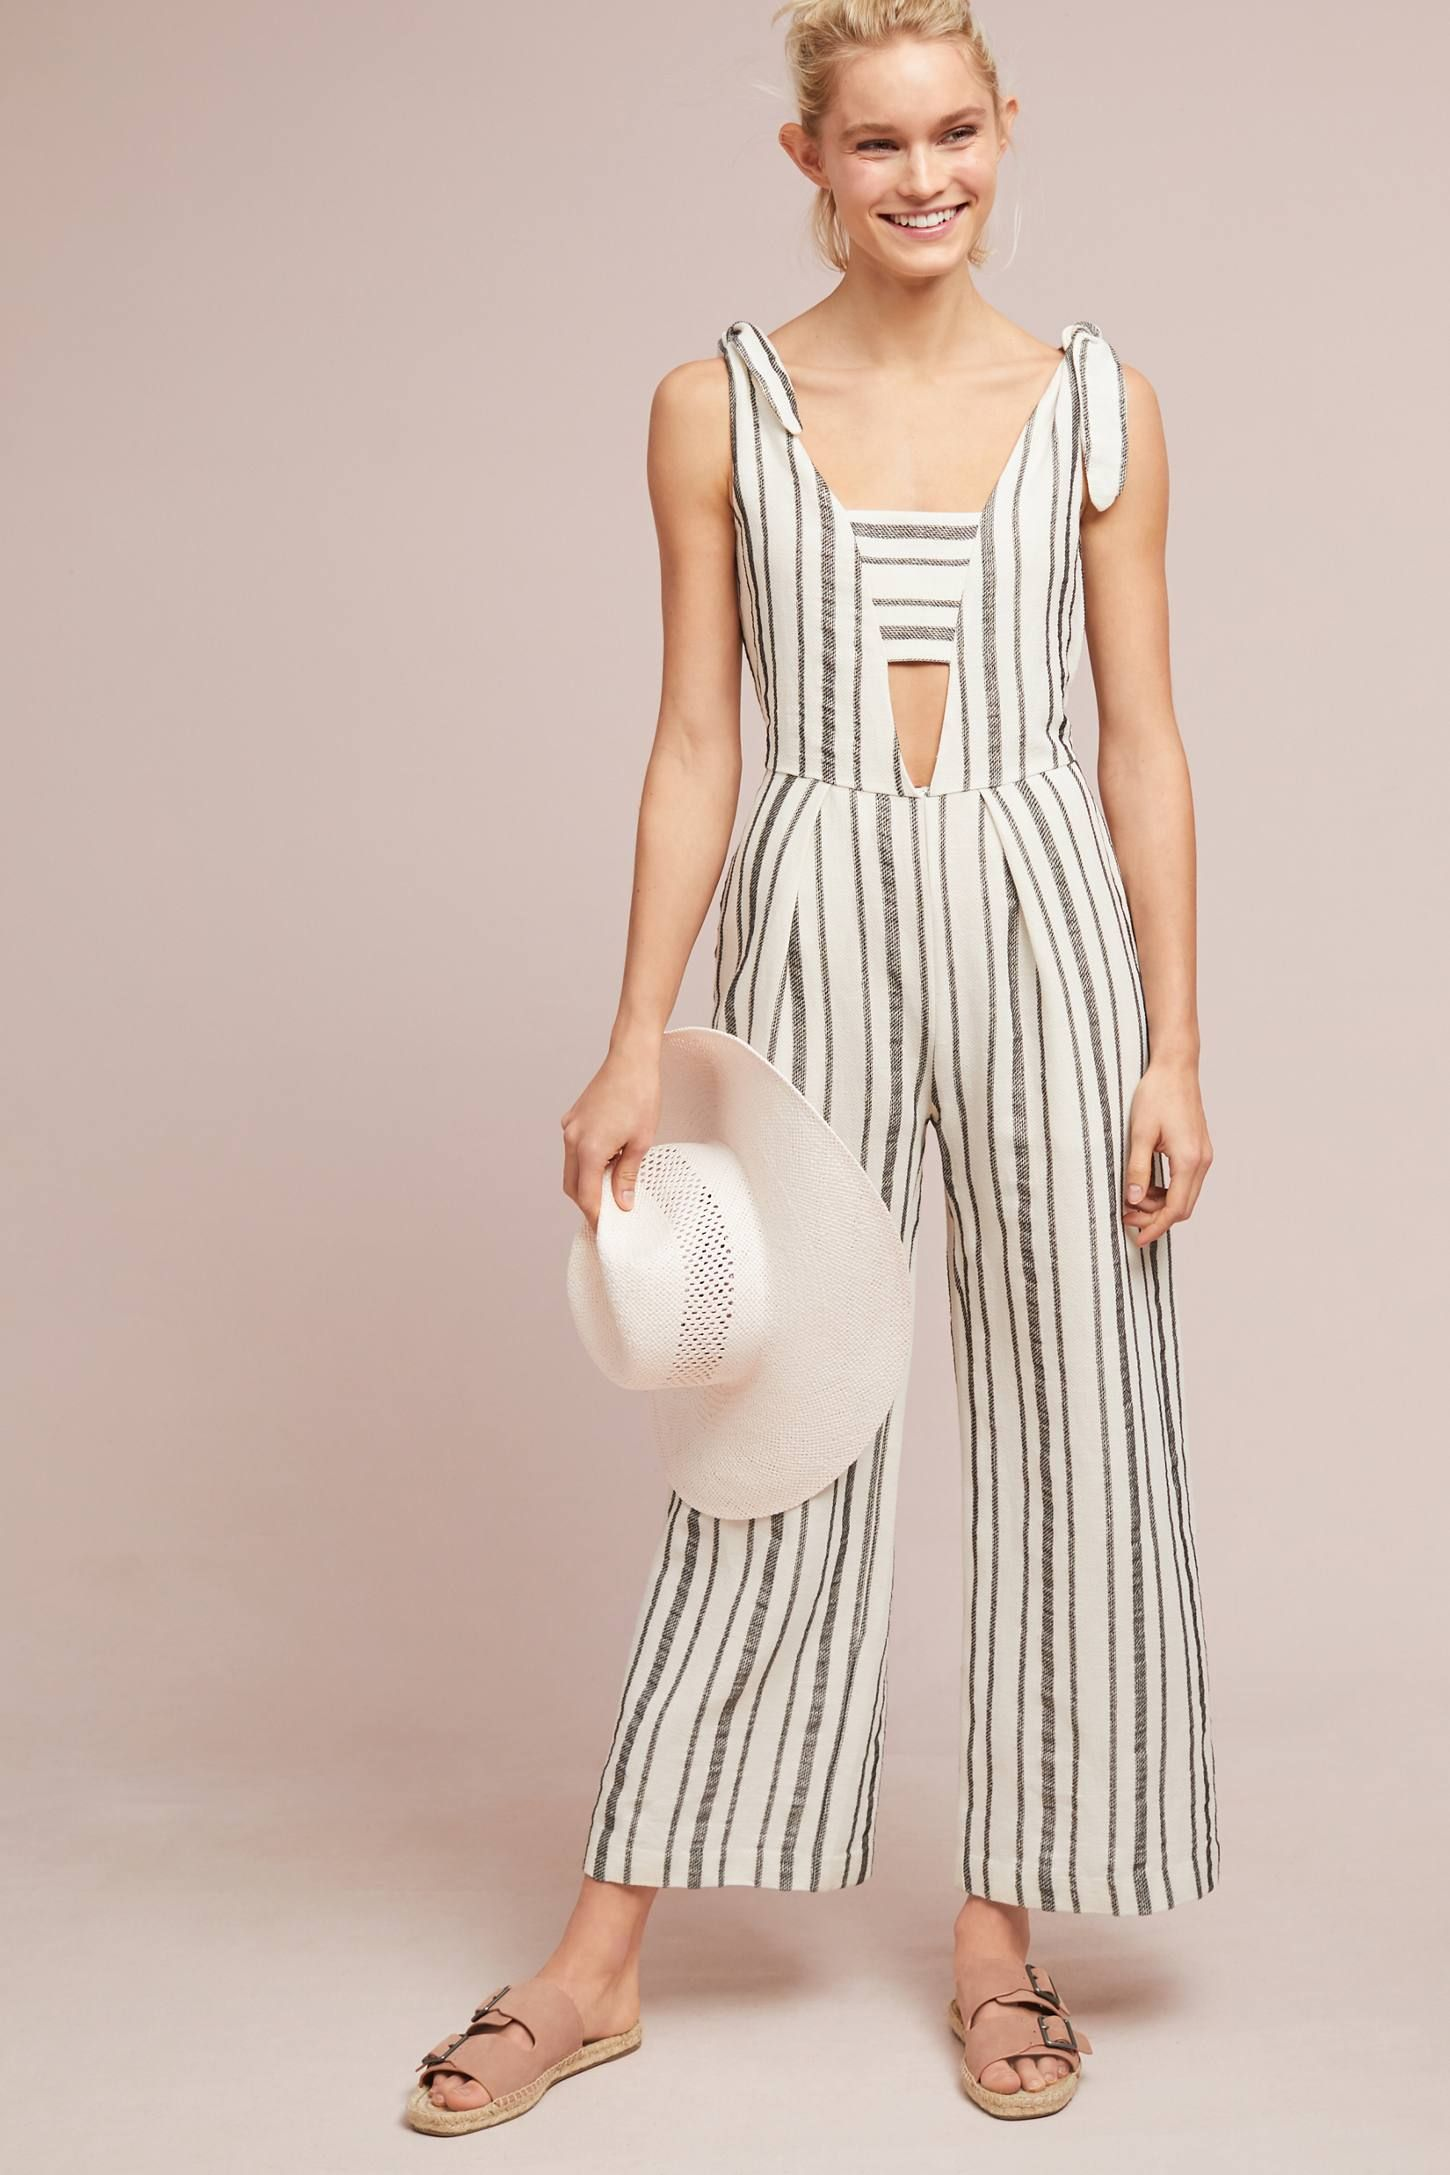 6a0e8f044c3 Shop the Levi s Beach Striped Jumpsuit and more Anthropologie at  Anthropologie today. Read customer reviews